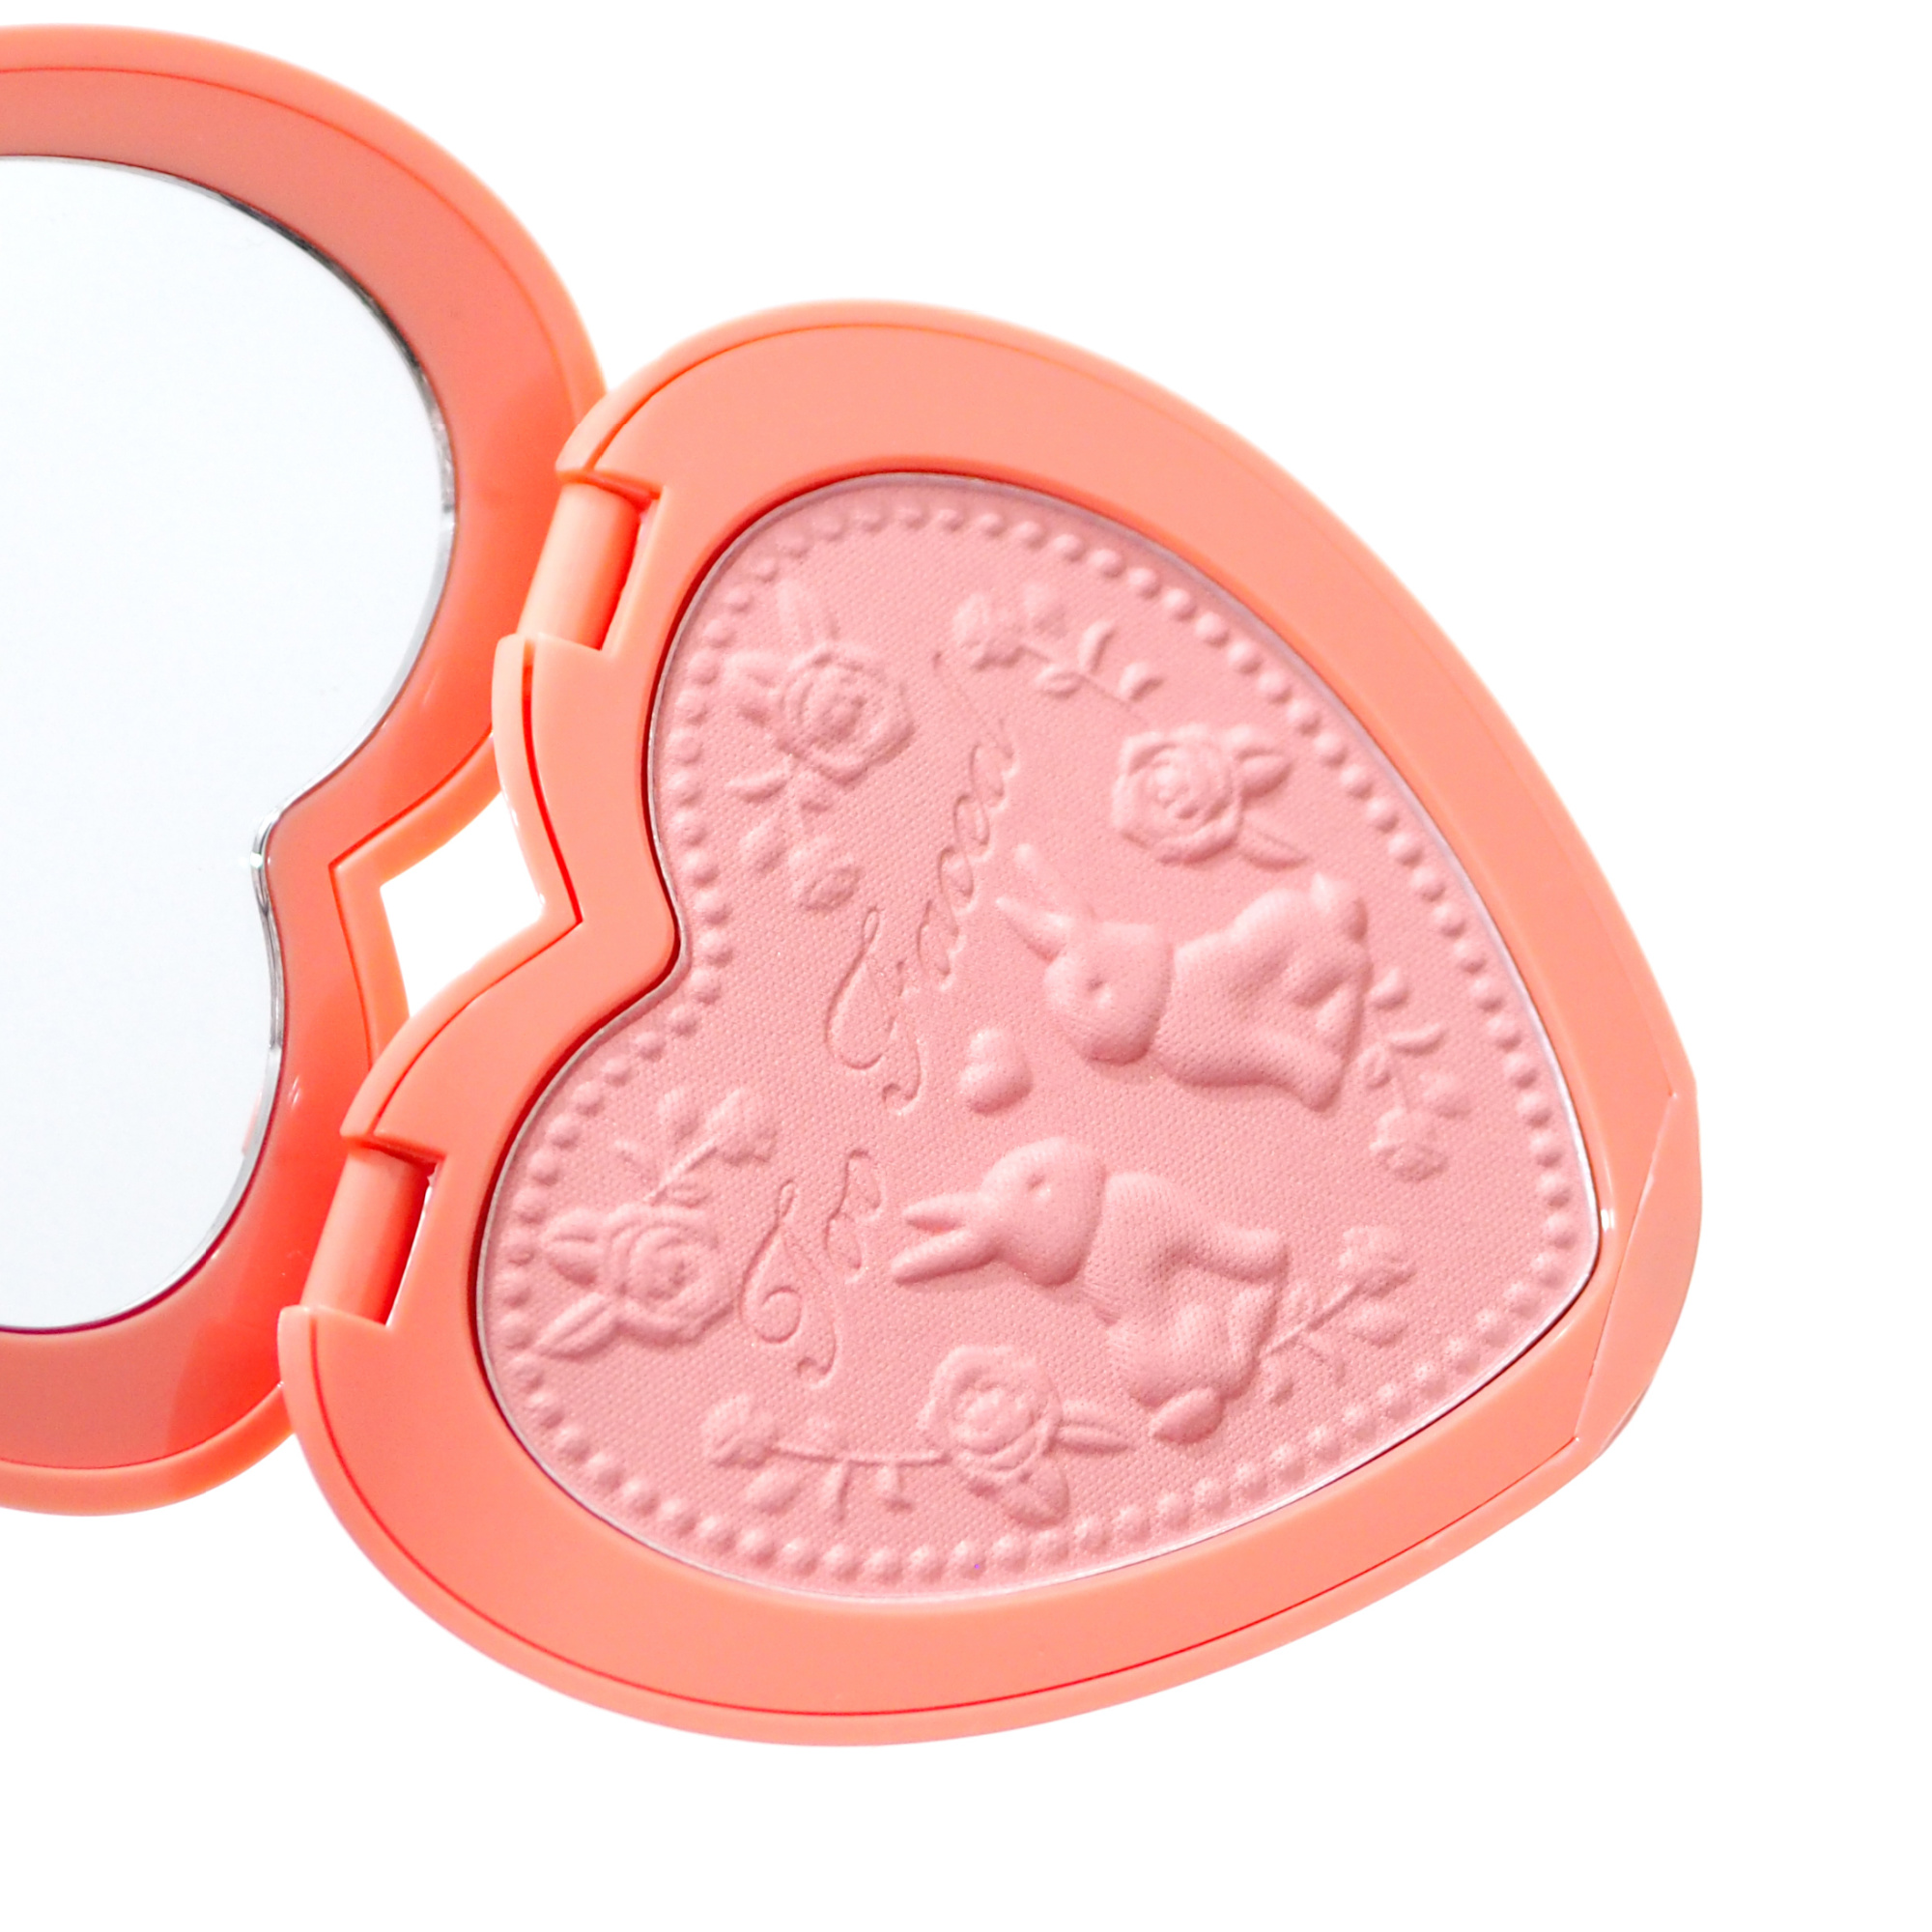 Too Faced Love Flush Love Yourself Water Color Blush Review / Swatches